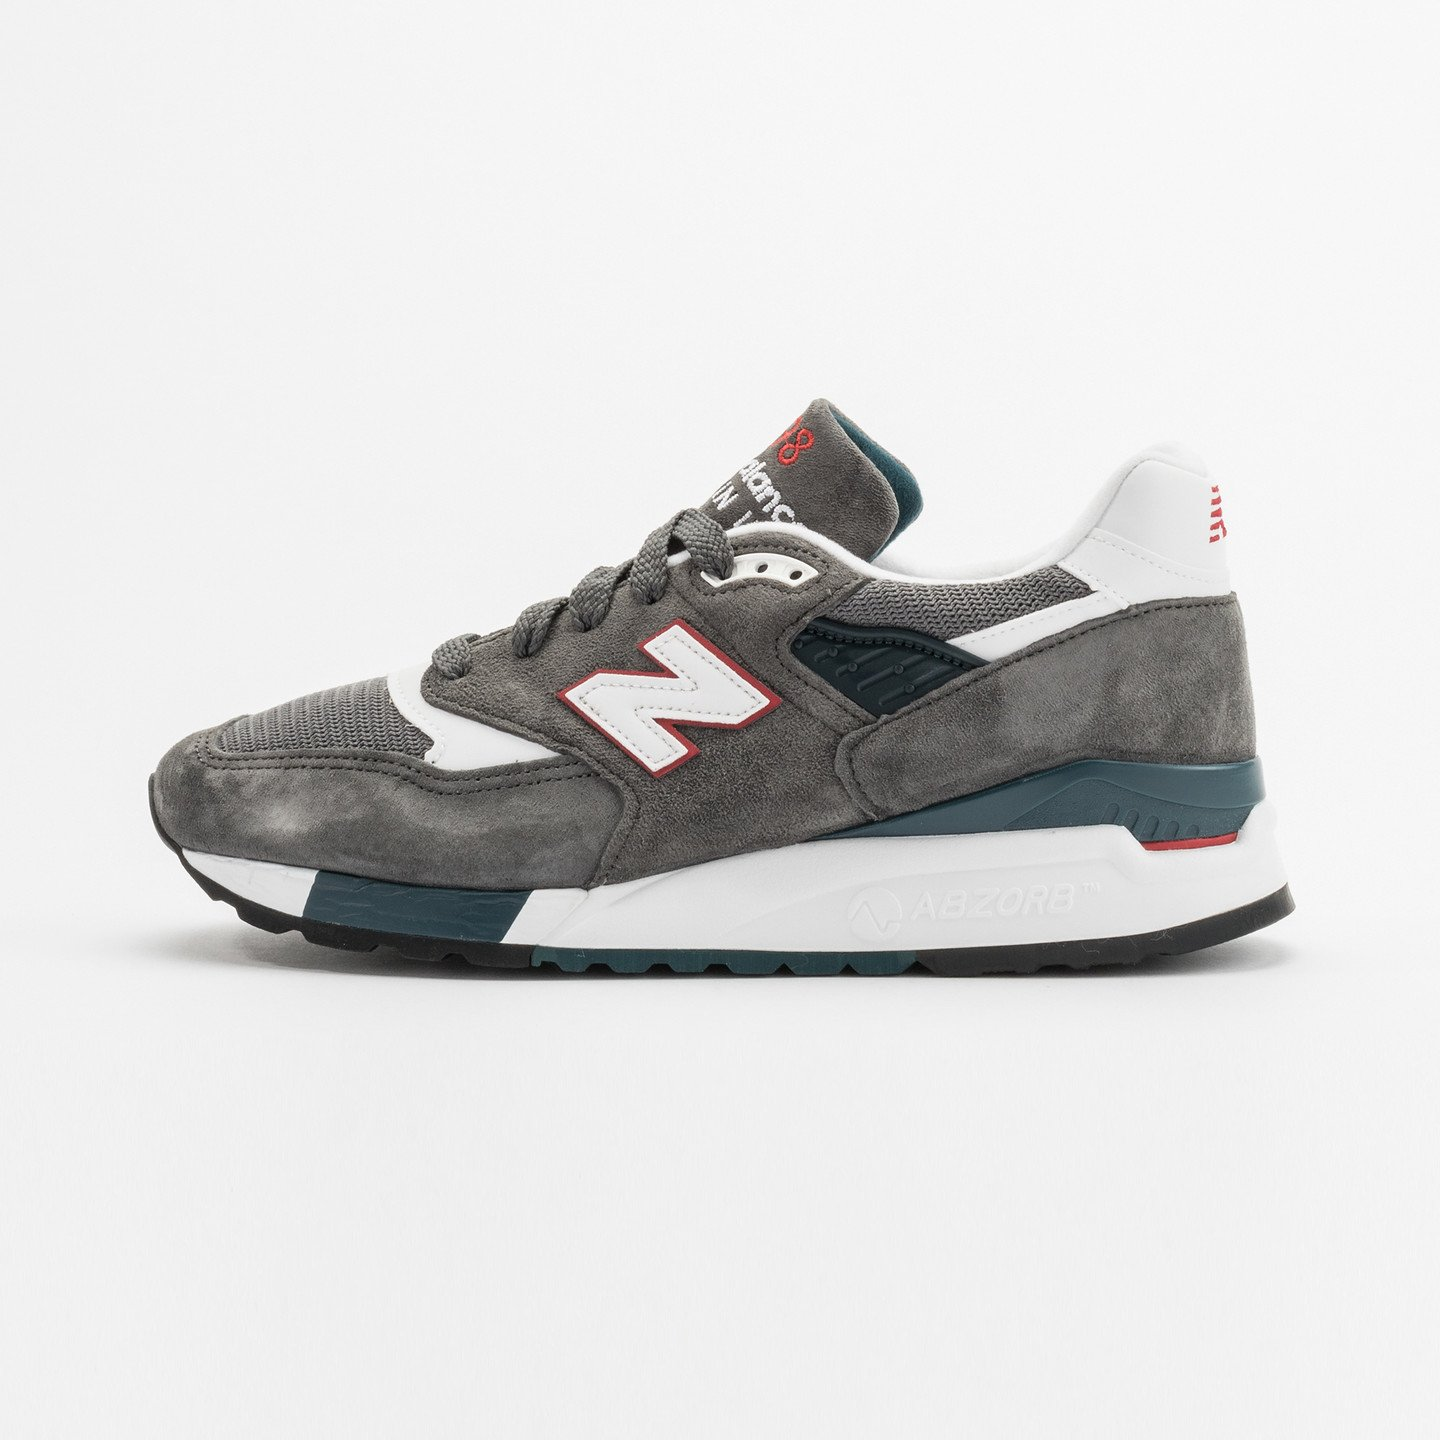 New Balance M998 CRA - Made in USA Granite Grey / White / Red M998CRA-45